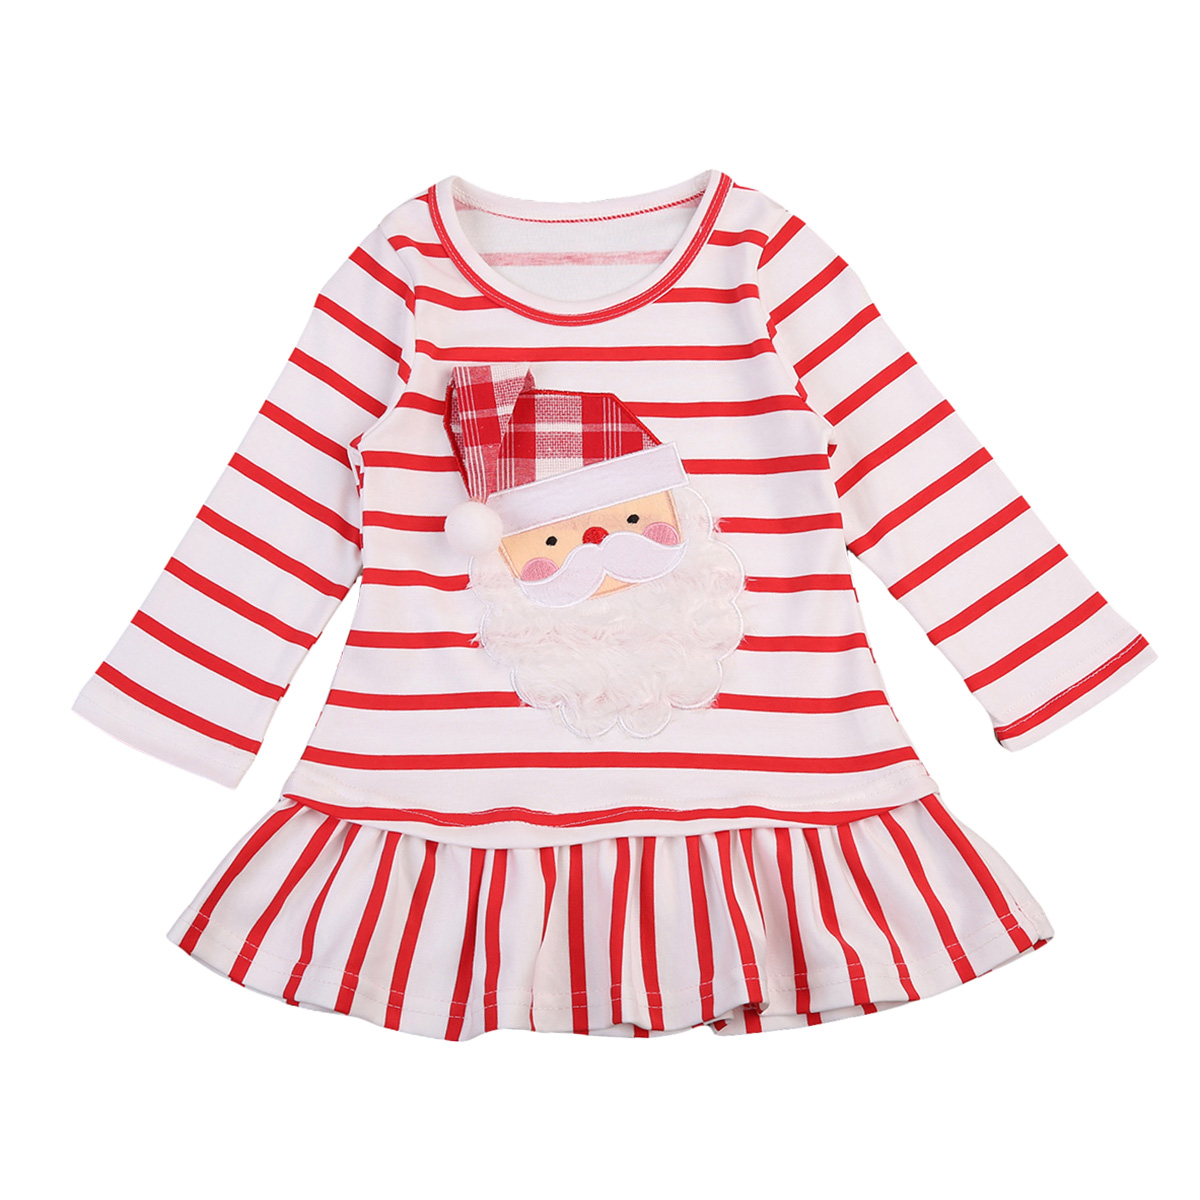 New Baby Girls Christmas Santa Claus Little Girls Cute Casual Xmas Striped Dress Clothes 0-5Y high quality rotationg automatic door infrared presence detector